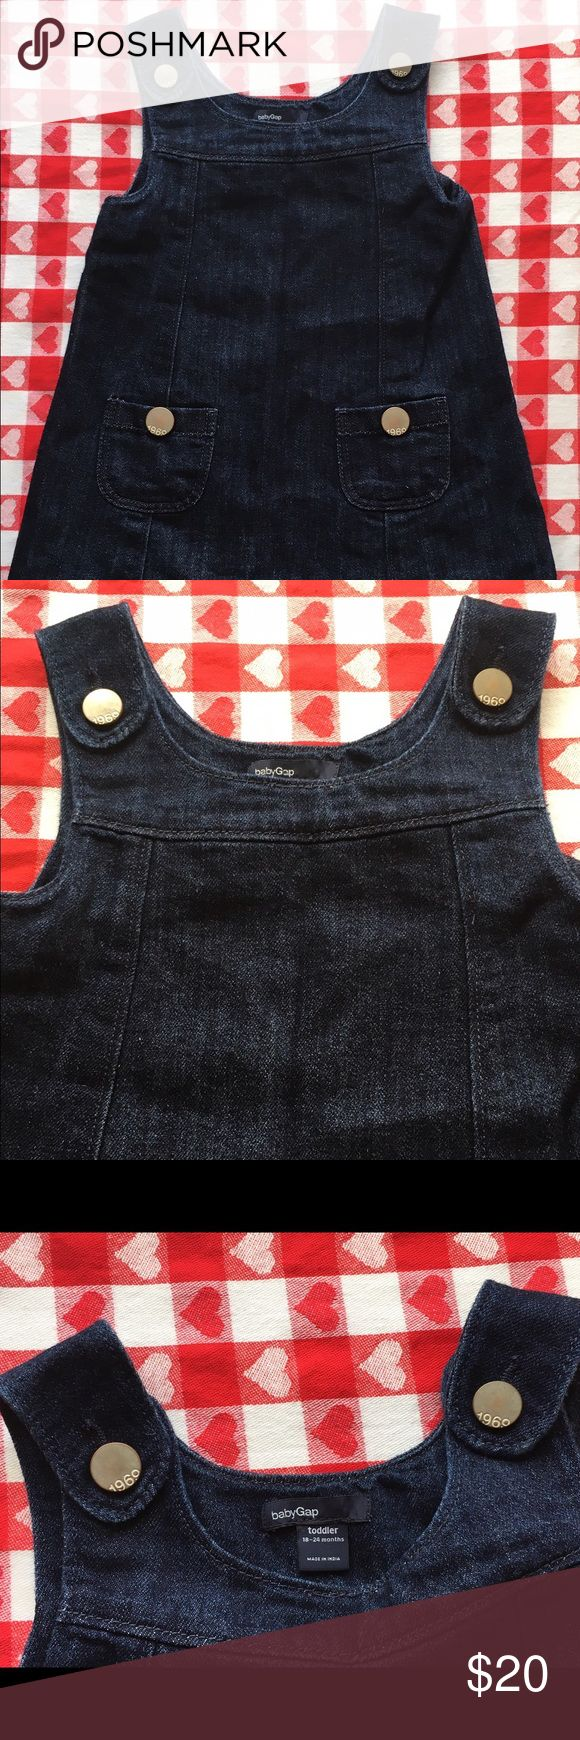 Toddler Jean jumper dress size 18-24 Months Adorable girls 18-24 month Jean jumper dress. Lightly worn one time! No holes or stains and comes from a non-smoking home. In awesome condition. Please see the pictures and email me with any questions. Thanks. Dresses